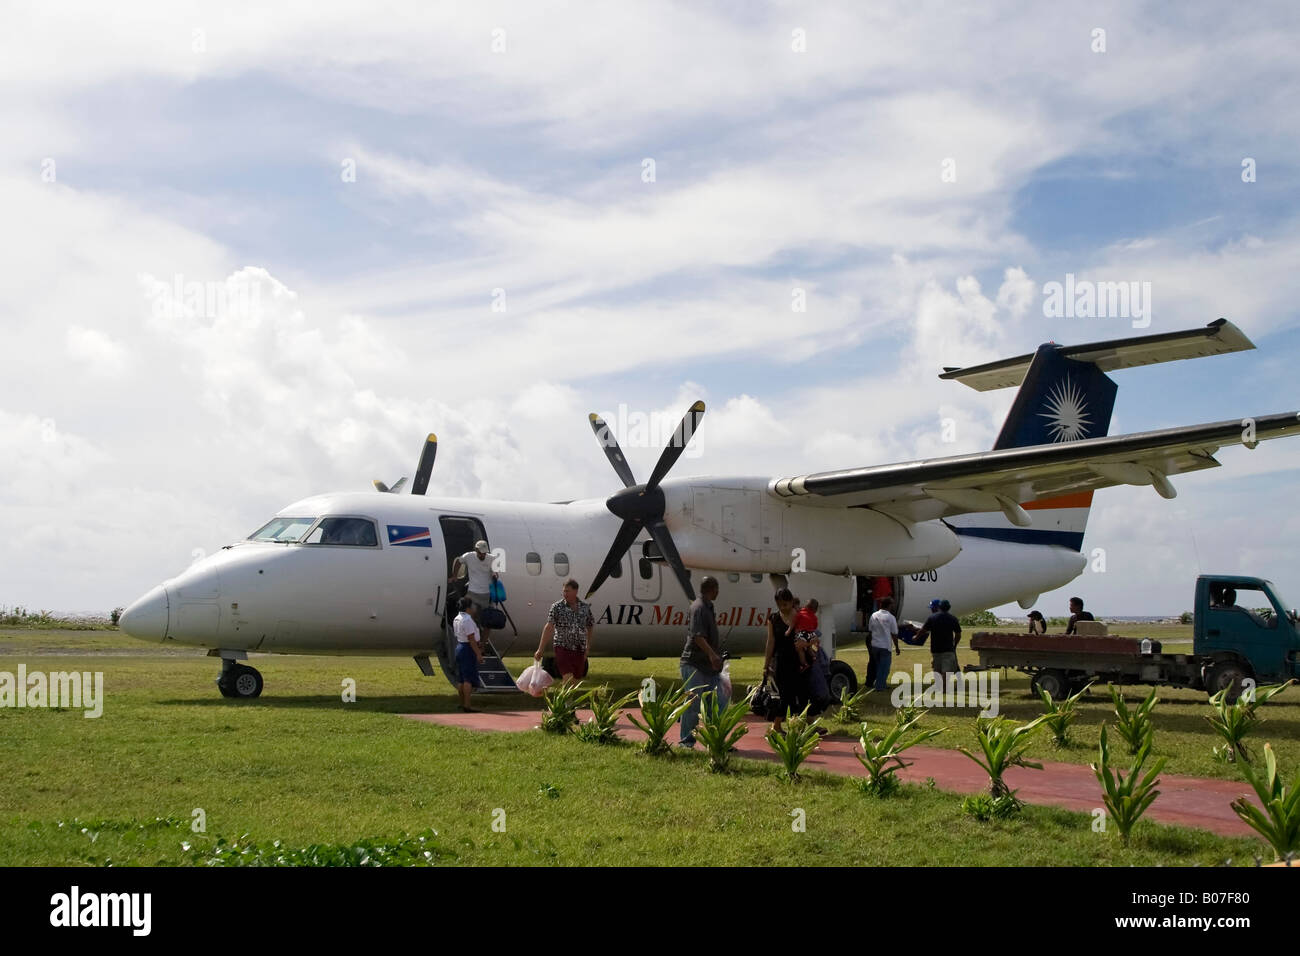 Local Airport, Jaluit Atoll, Marshall Islands - Stock Image